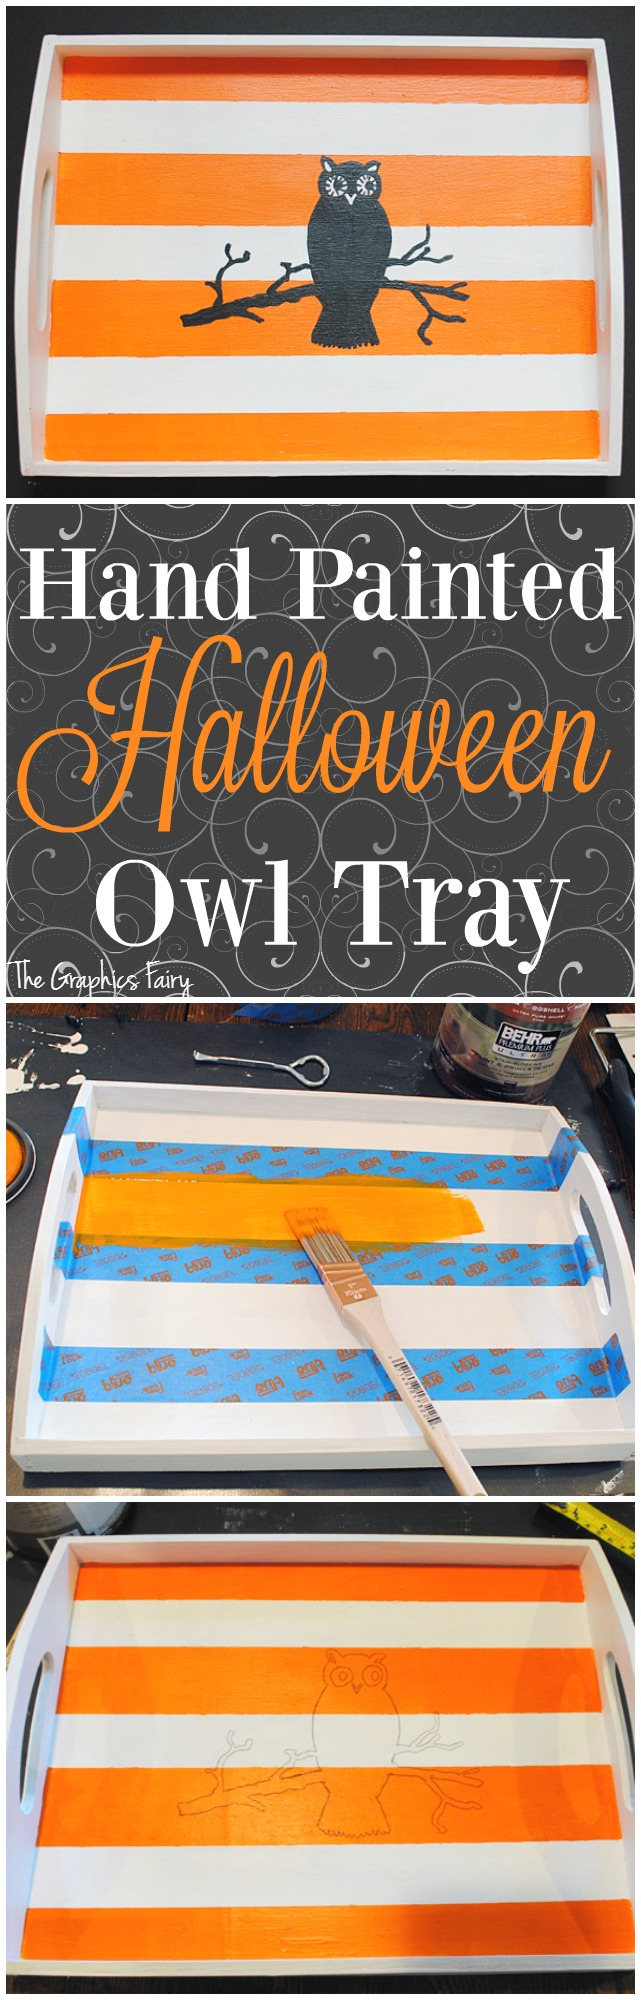 Hand Painted Halloween Owl Tray - The Graphics Fairy